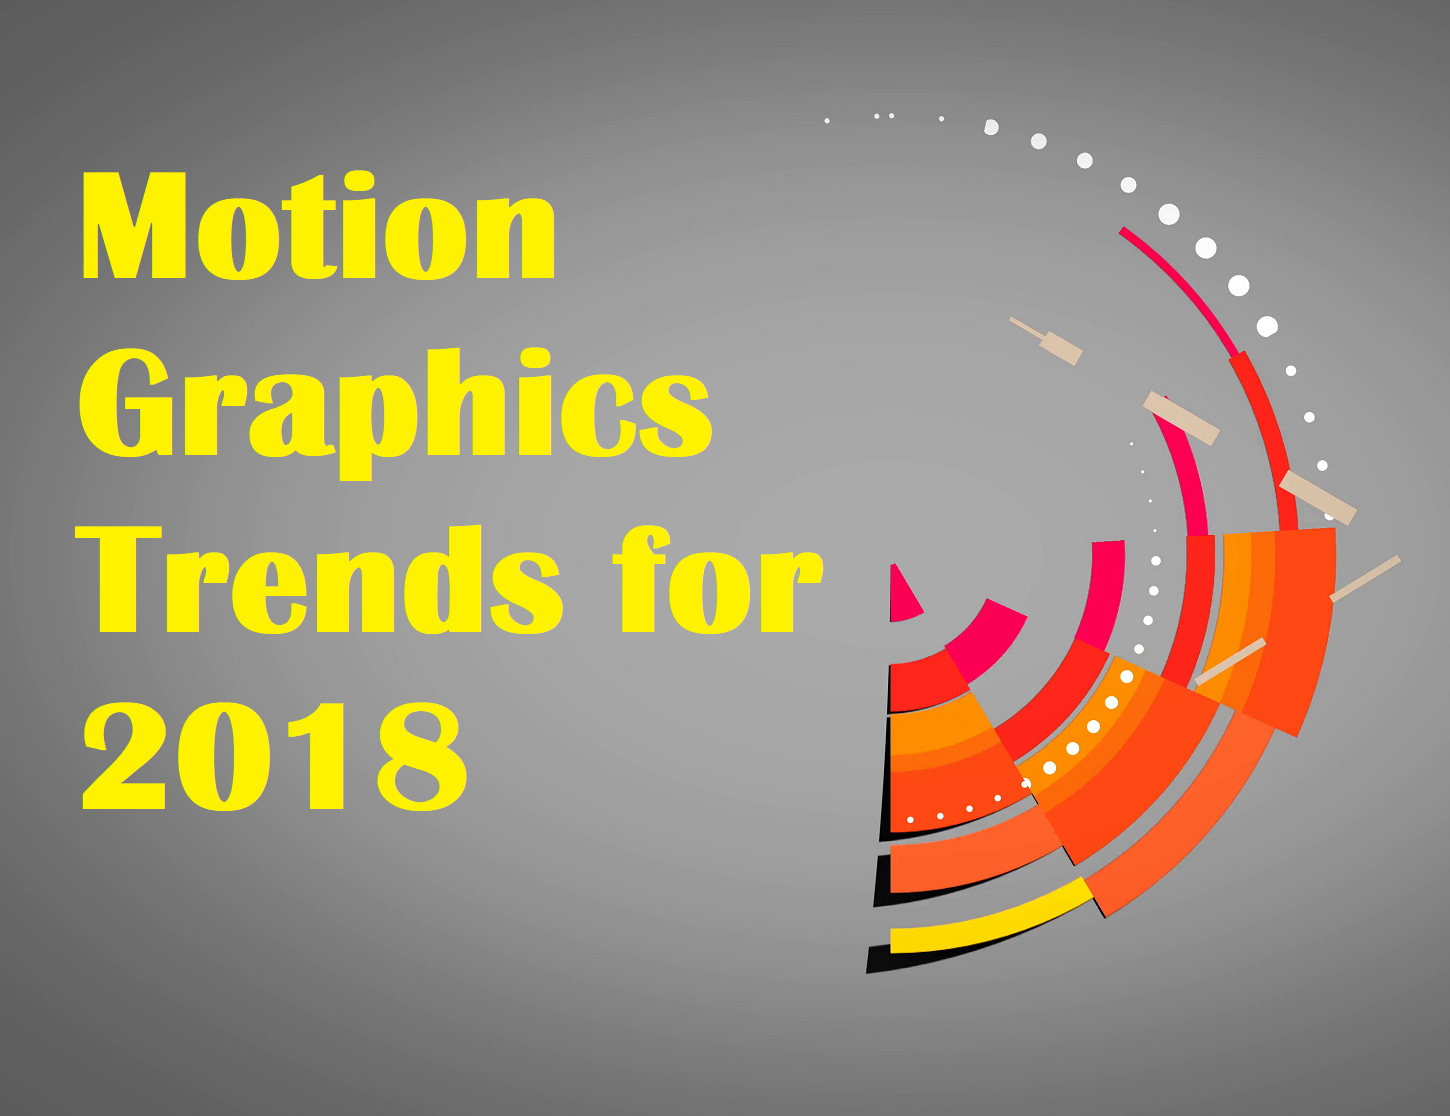 Motion Graphics Trends for 2018